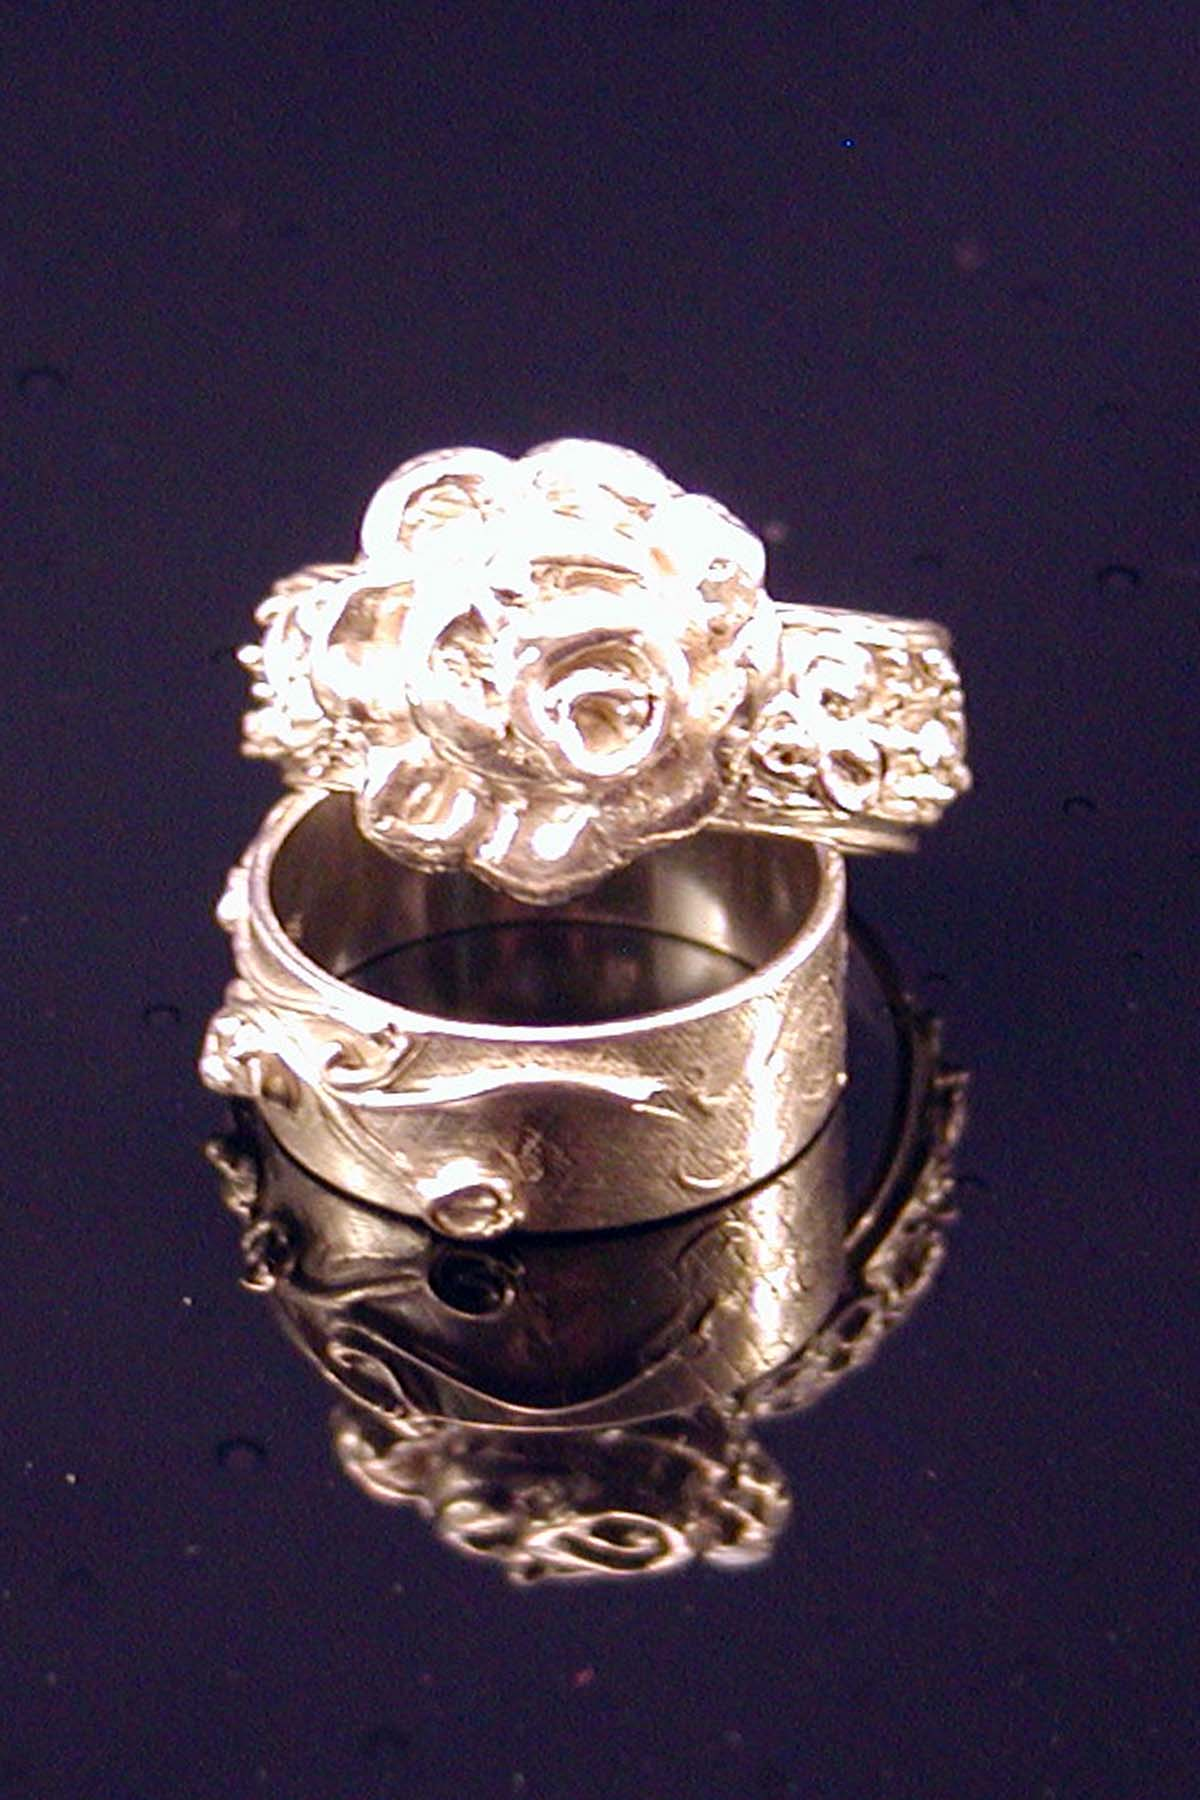 Chanel and Jackies rings.jpg